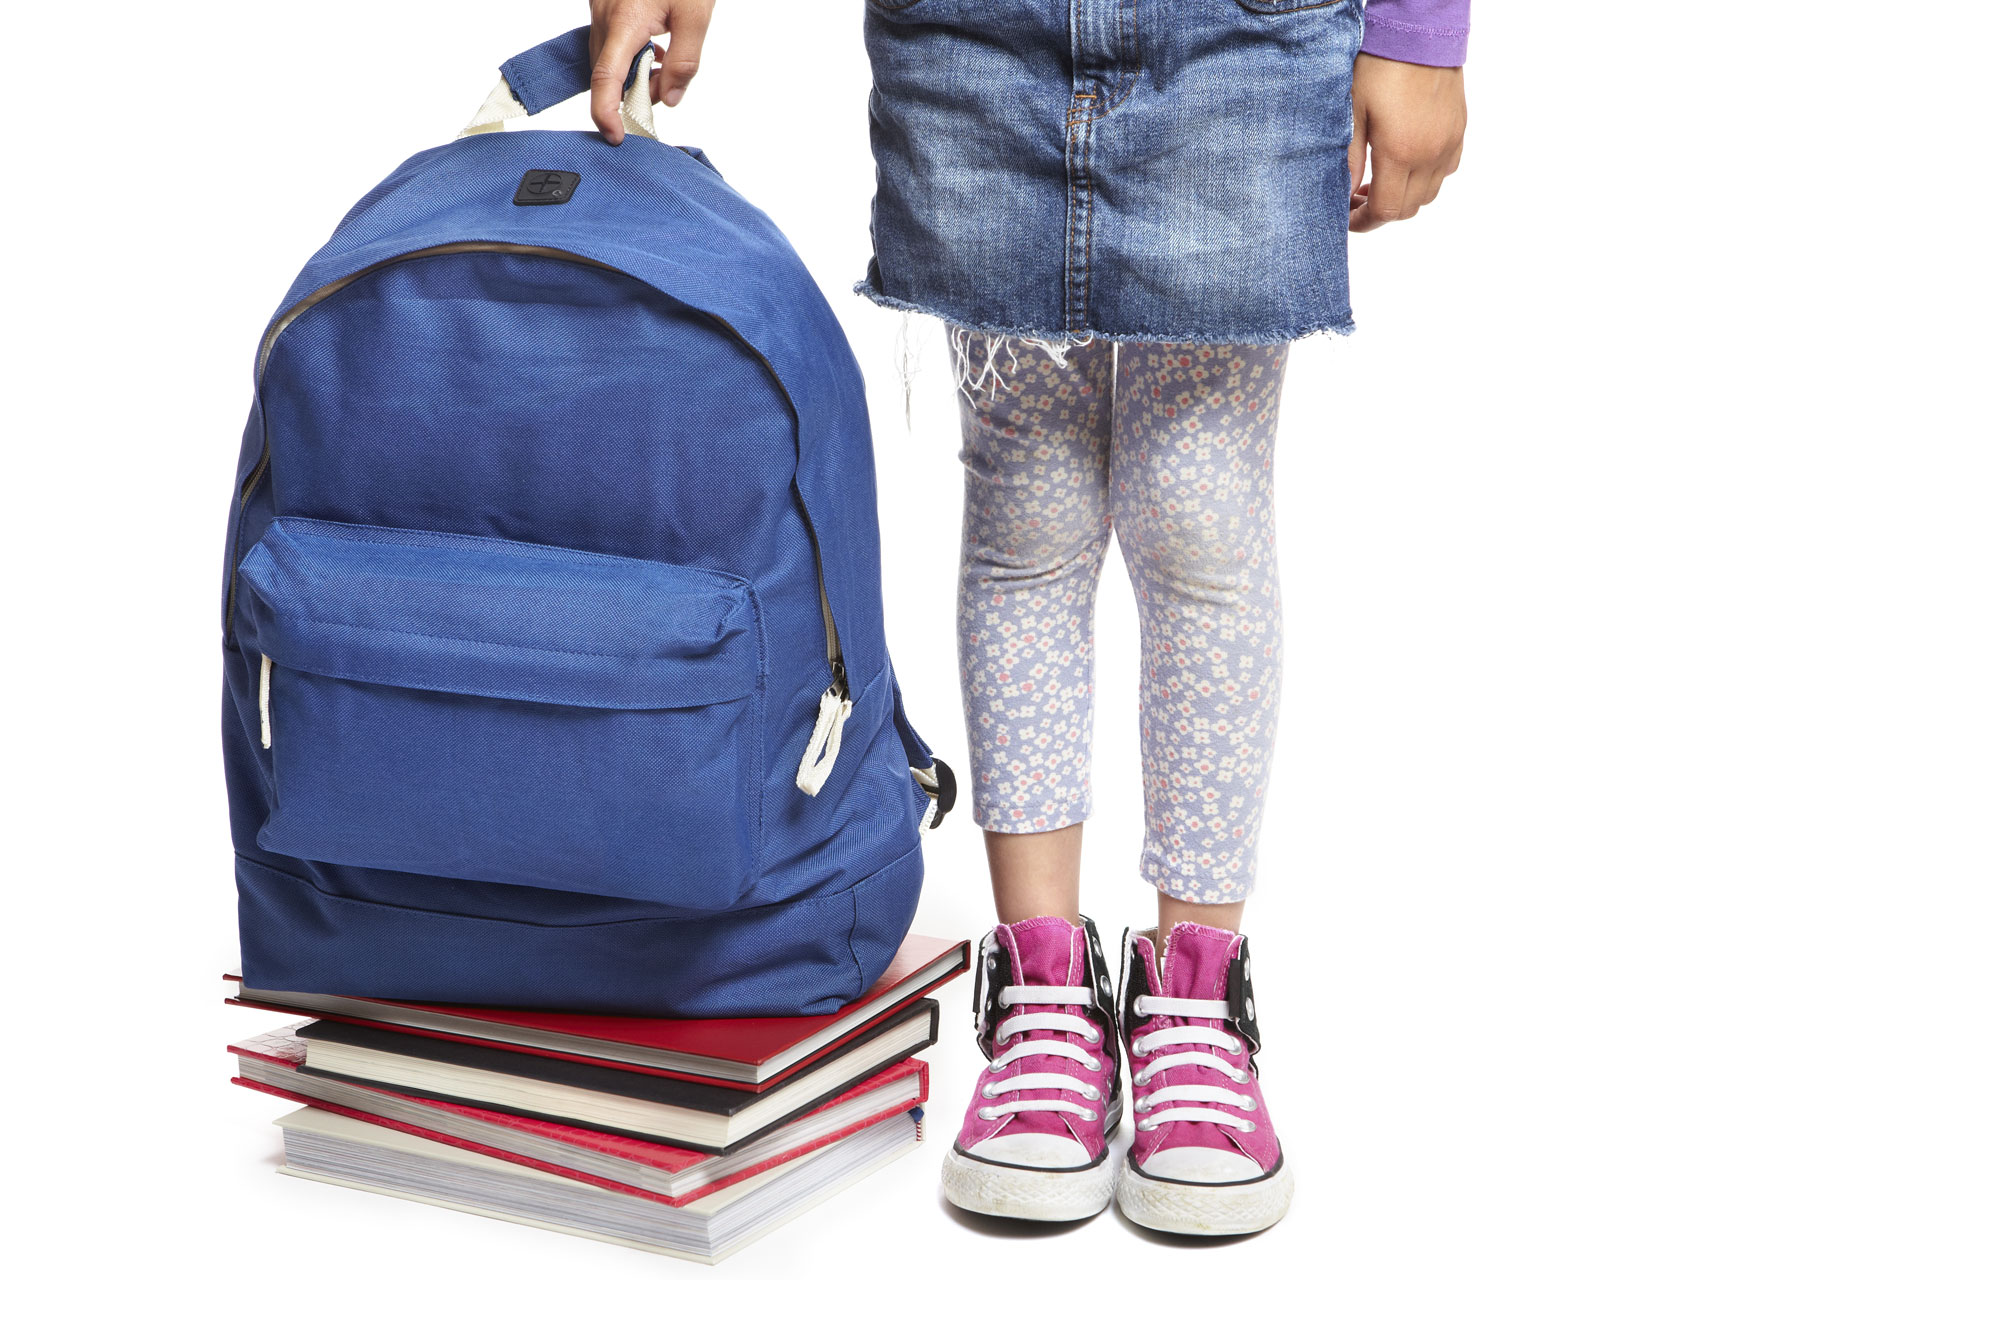 back pain, Back to School Back Pain: Back-Friendly Backpack Tips